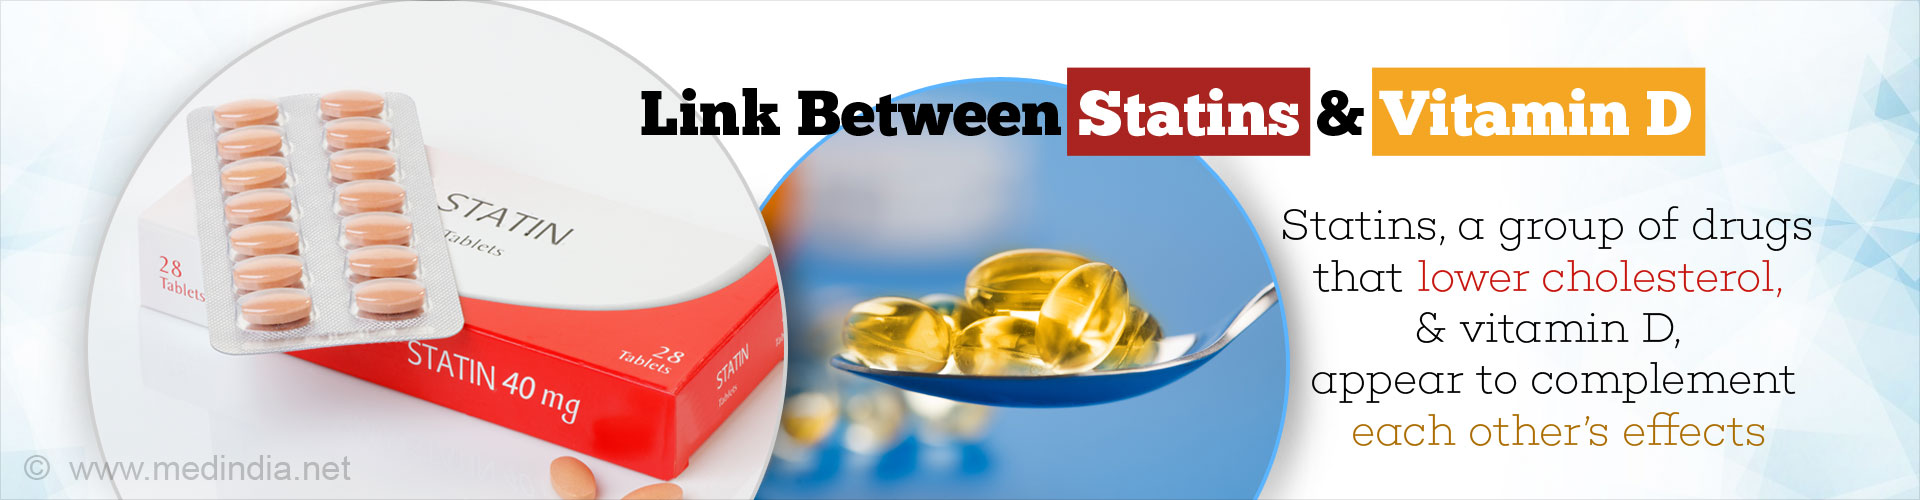 Link between Statins and Vitamin D